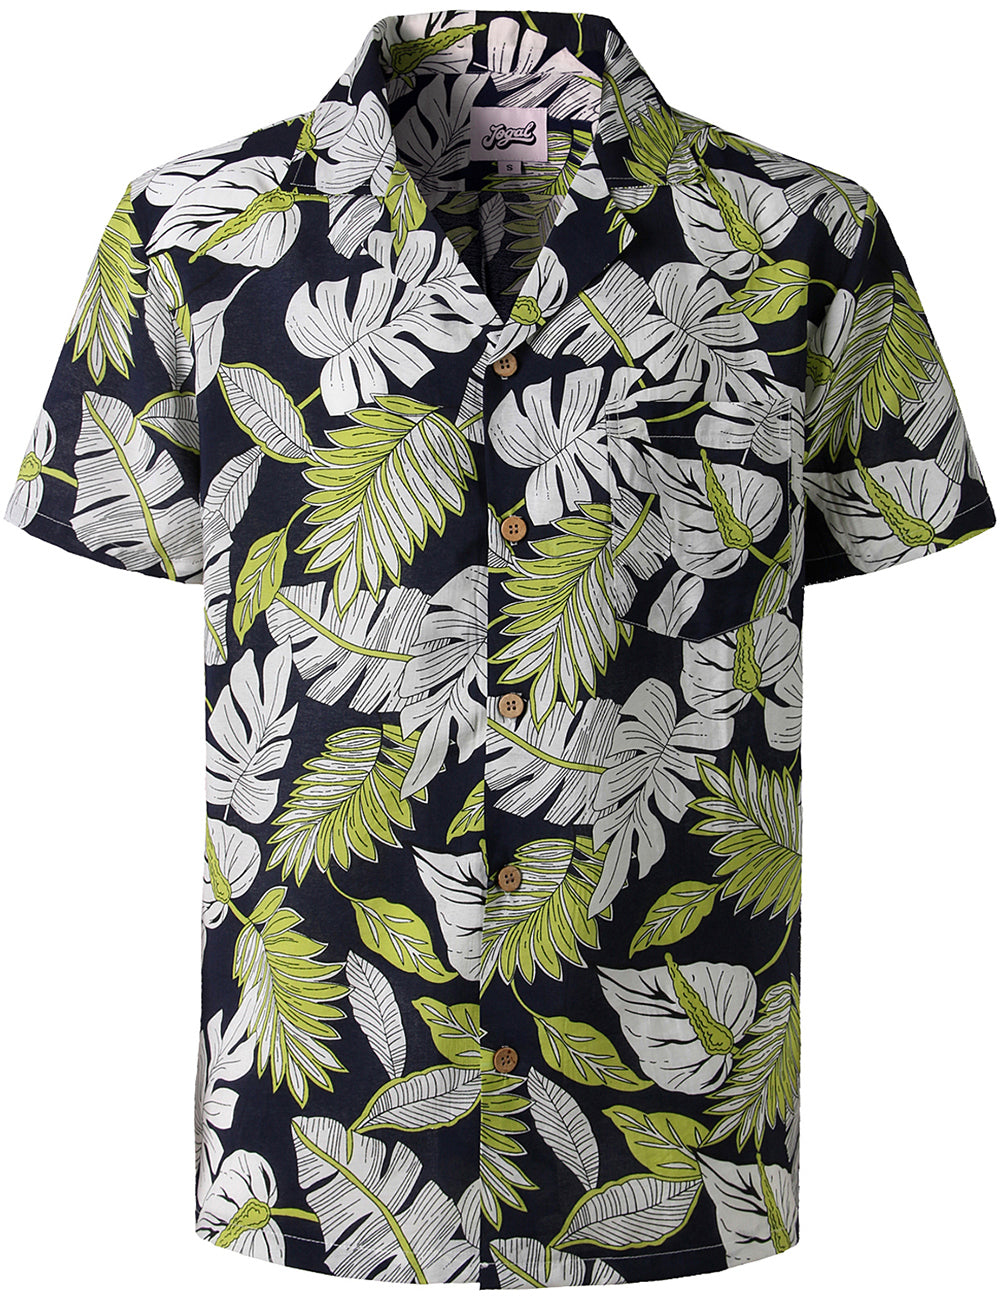 JOGAL Men's Relaxed-Fit Cotton Tropical Hawaiian Shirt(Leaf)